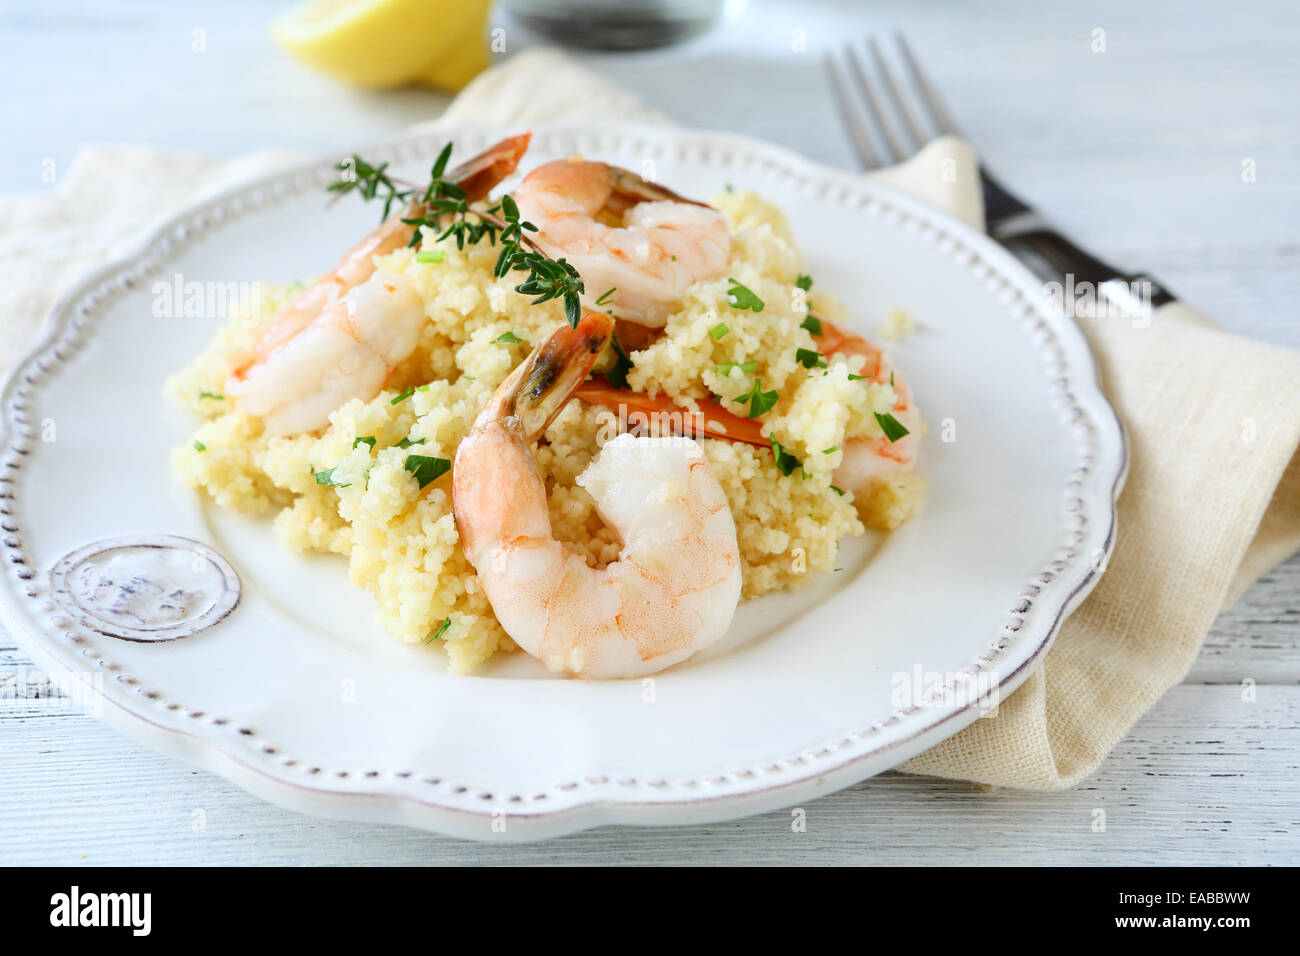 Tasty couscous with shrimp, nutritious food - Stock Image